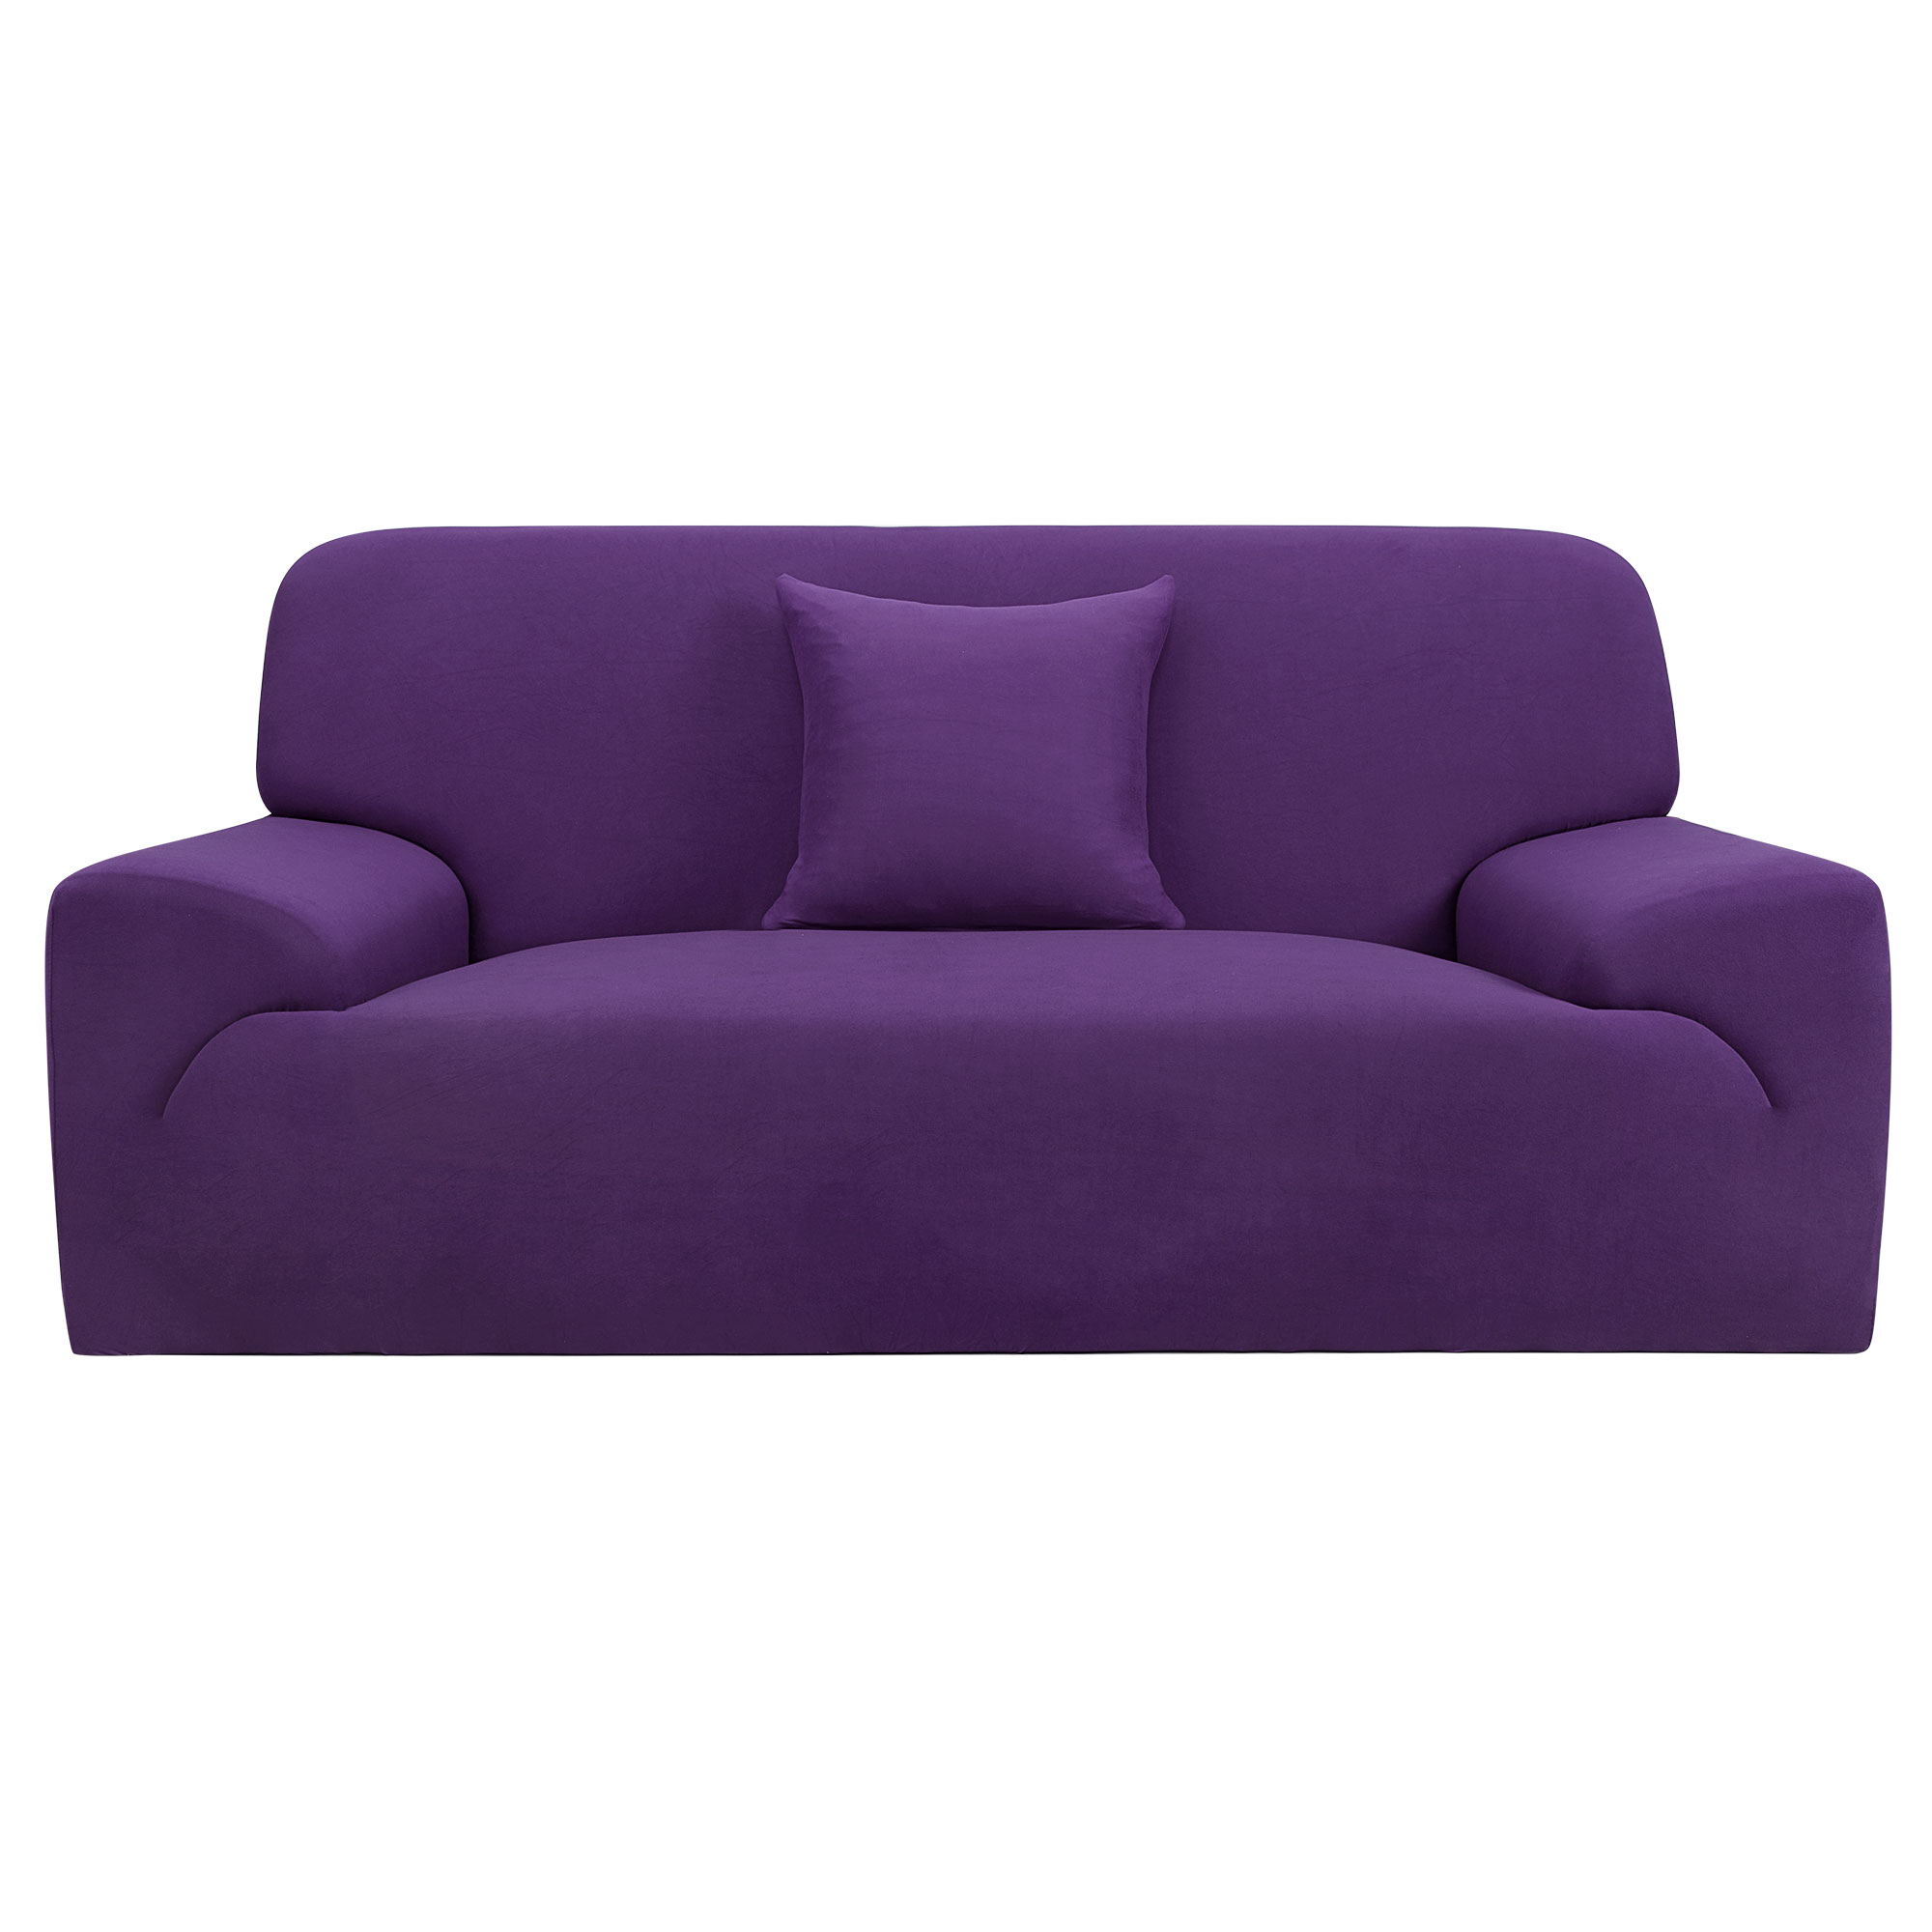 Home Chair Loveseat Sofa Couch Stretch Protector Cover Slipcover Purple 57''-72'